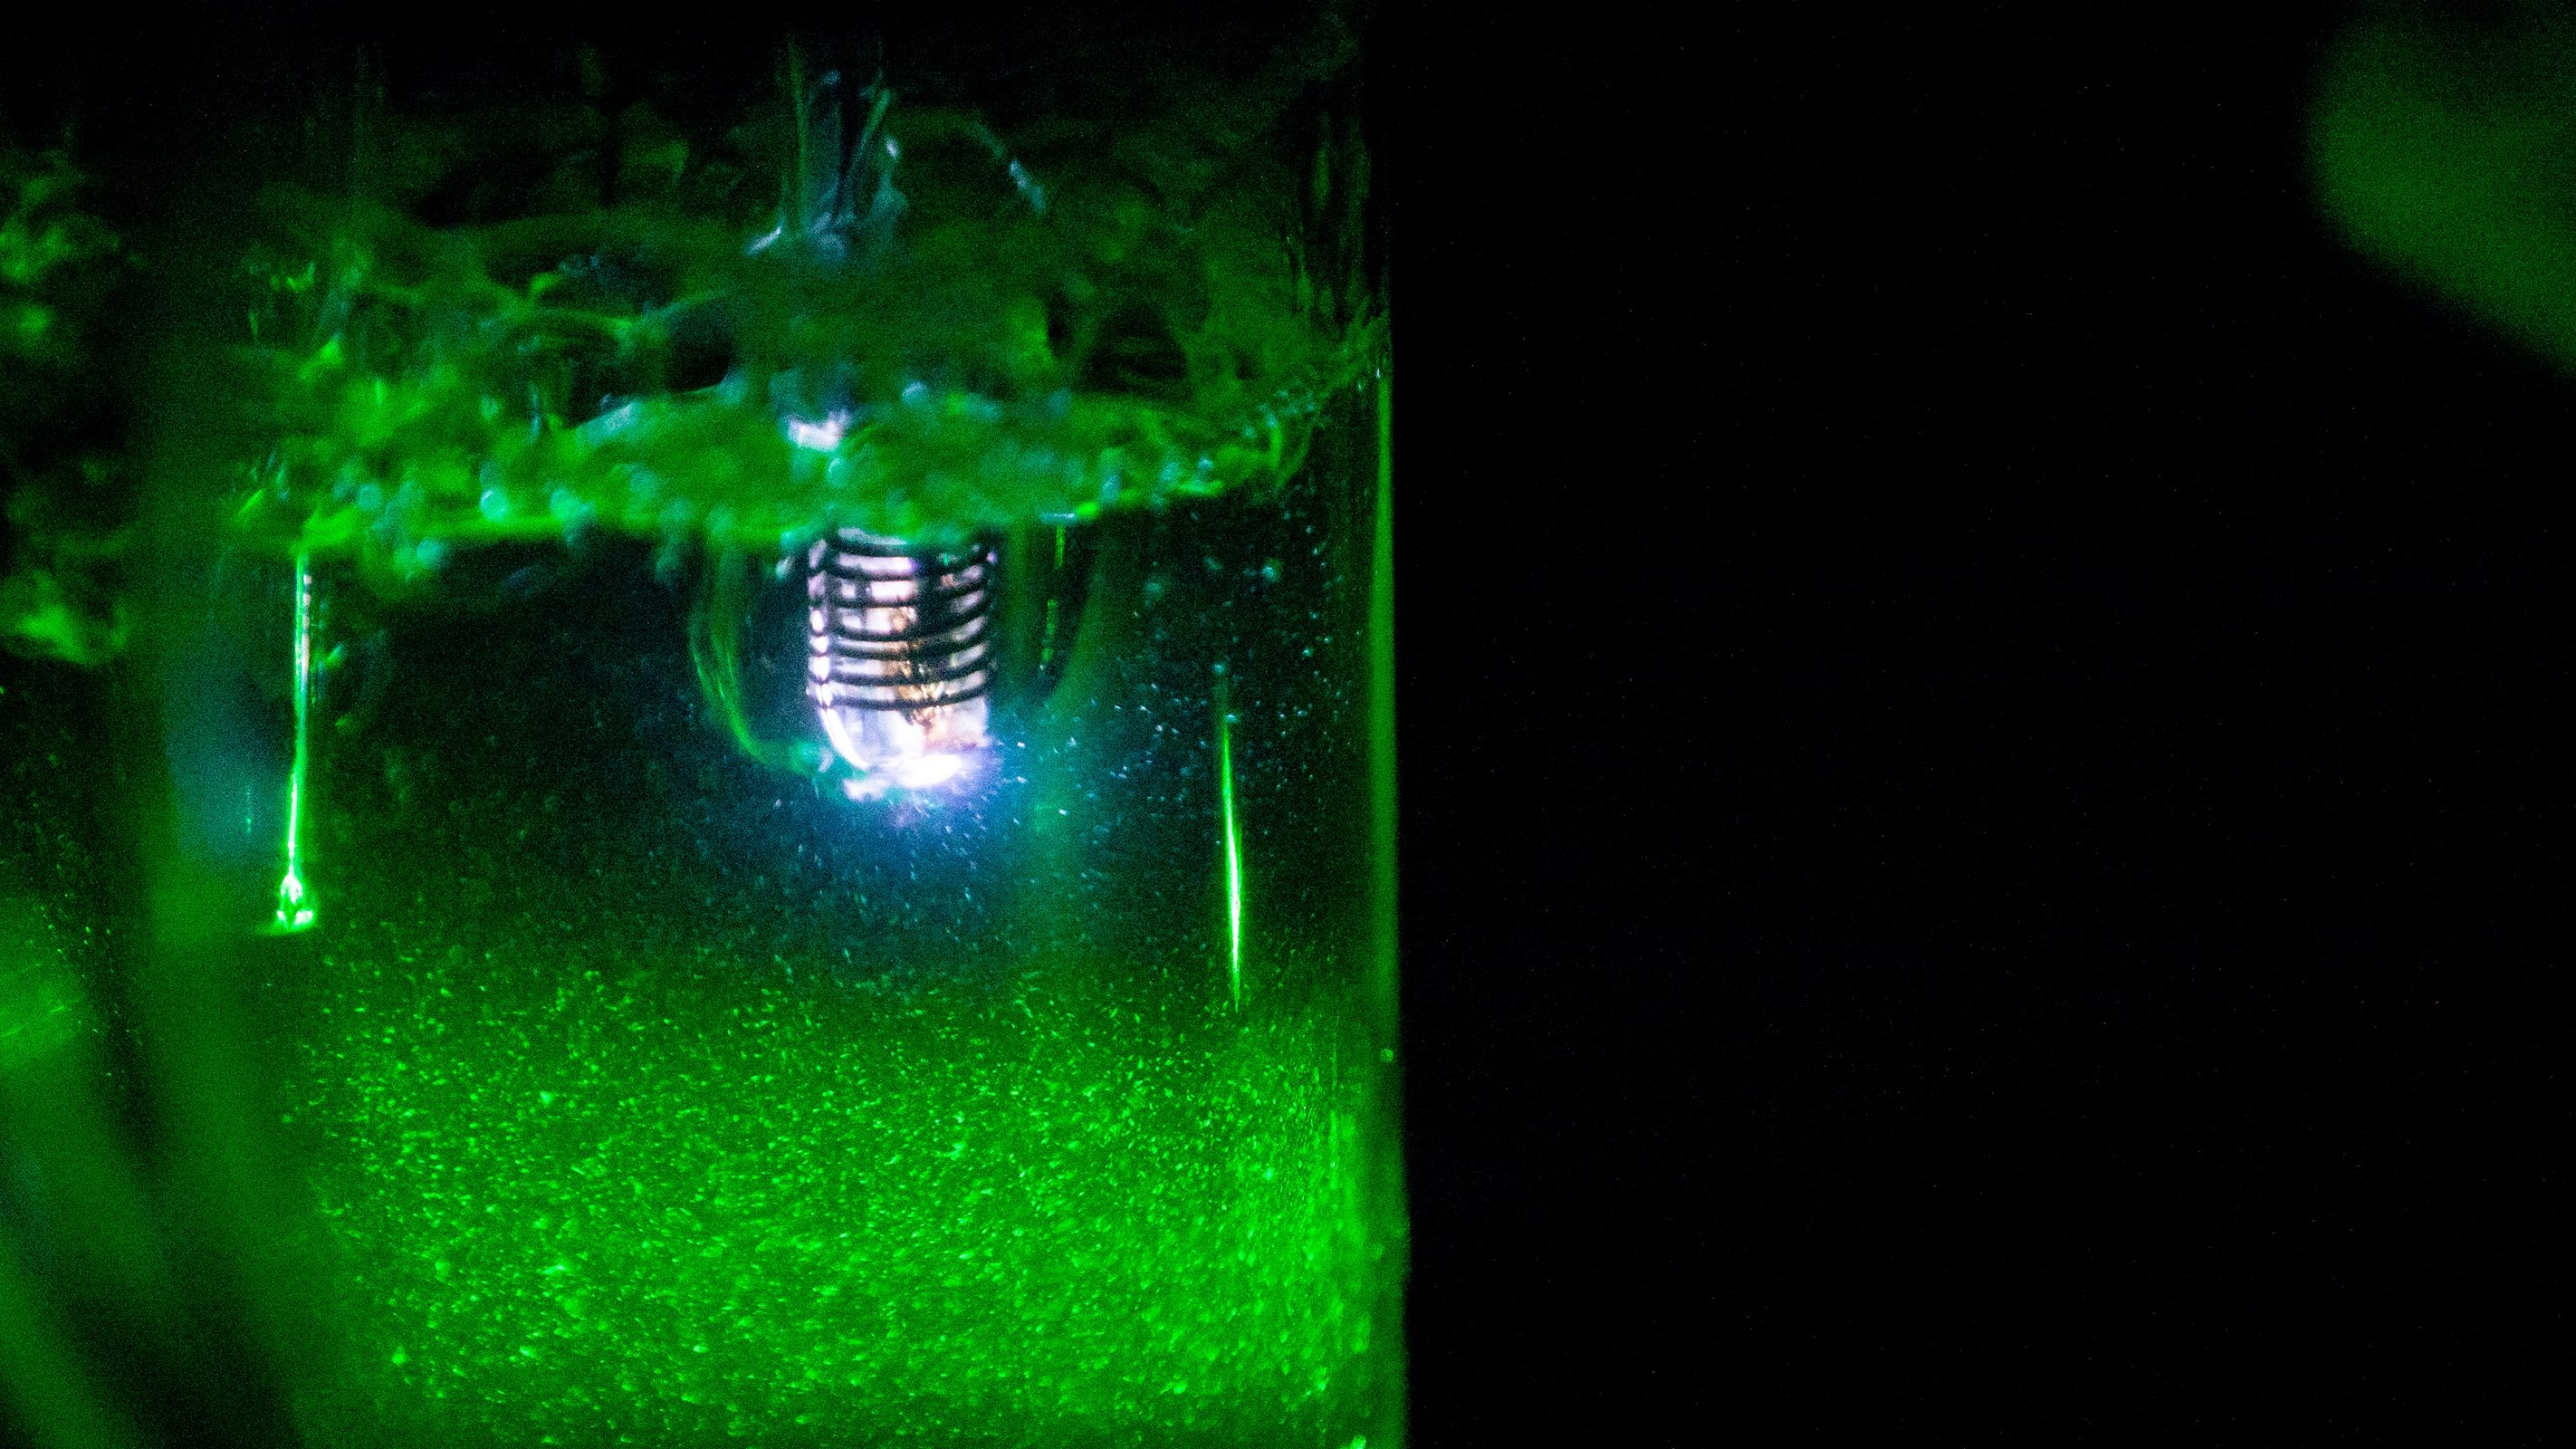 Jar of water glows with green light